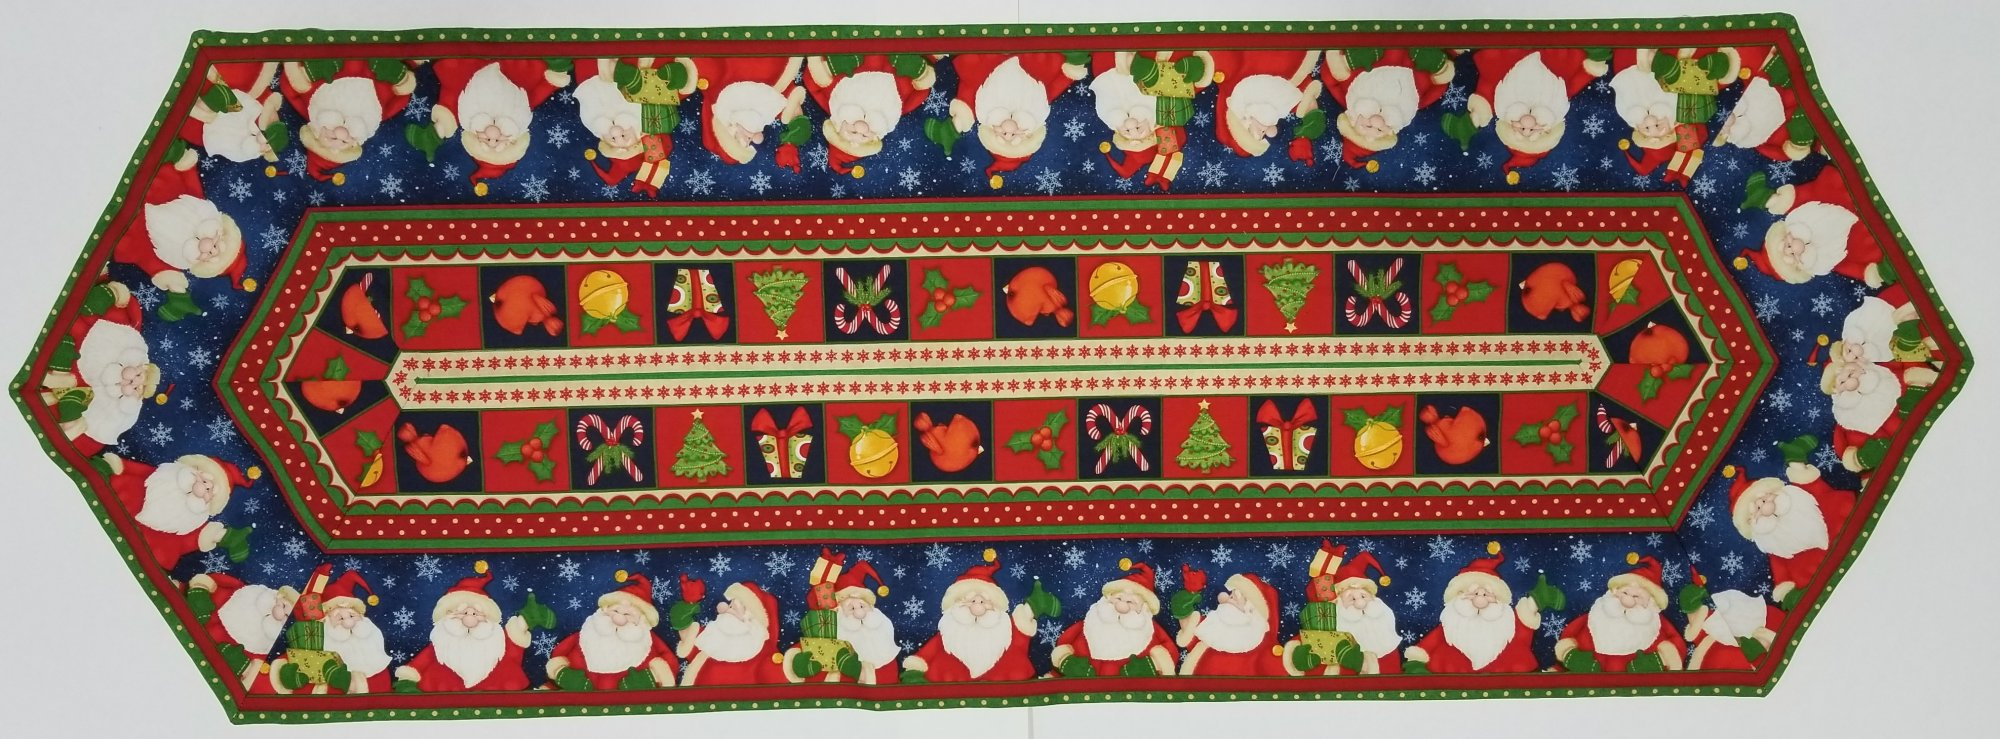 Easy Striped Santa Table Runner KIt